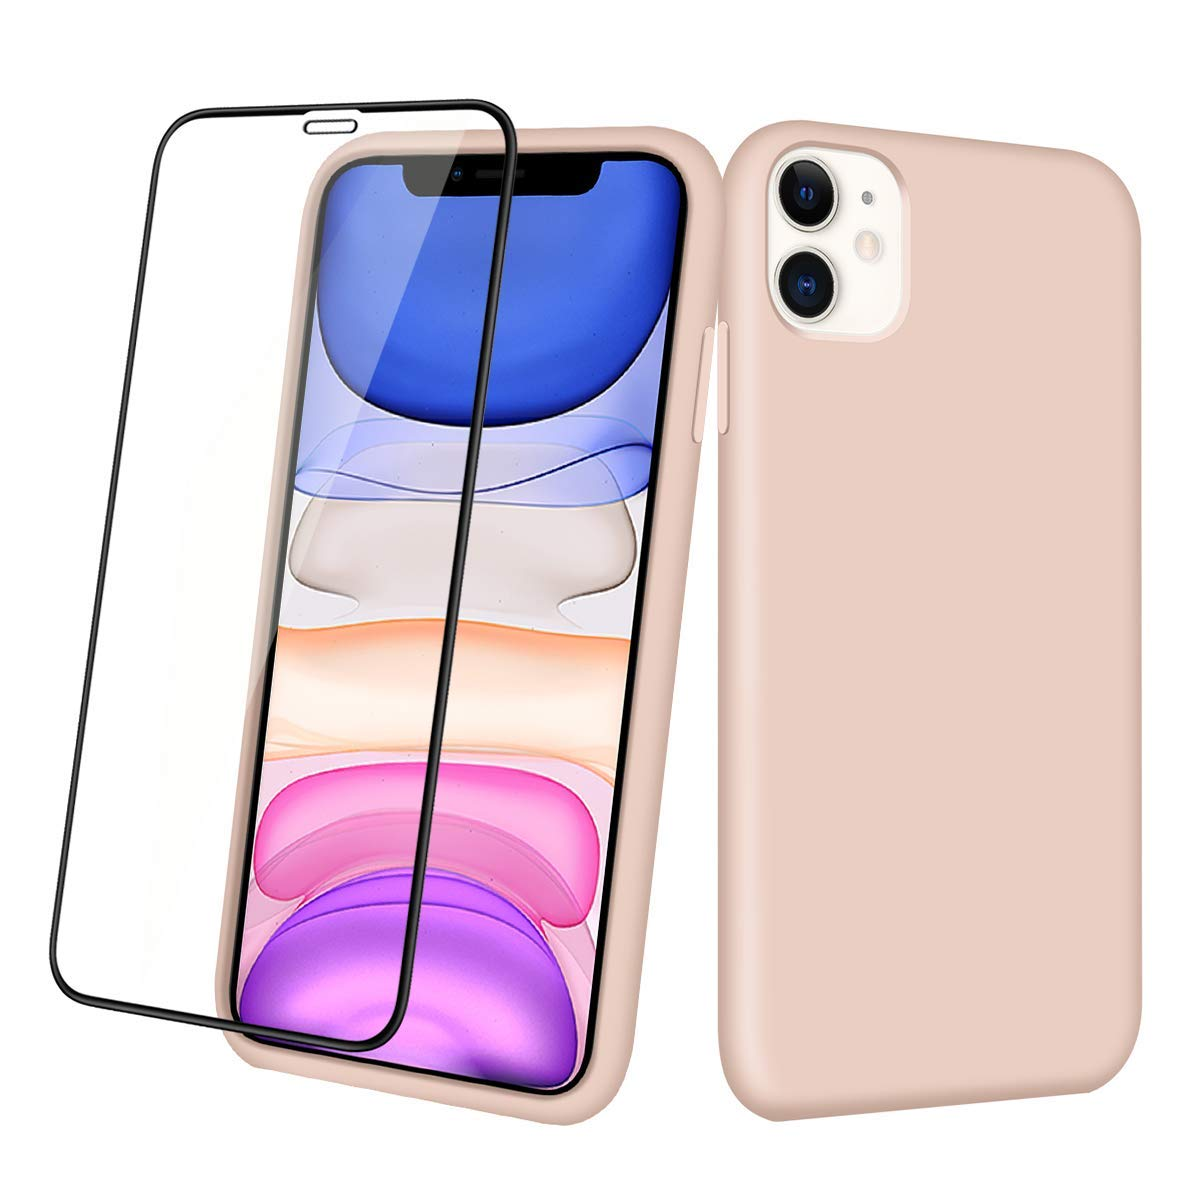 Aemotoy Case for iPhone 11 Soft Rubber Silicone Case Full Body Wrapped 2 in 1 with Tempered Glass Anti-Scratch Shock Absorption Slim Cover Case for 2019 Release 6.1 Inches iPhone 11, Sand Pink